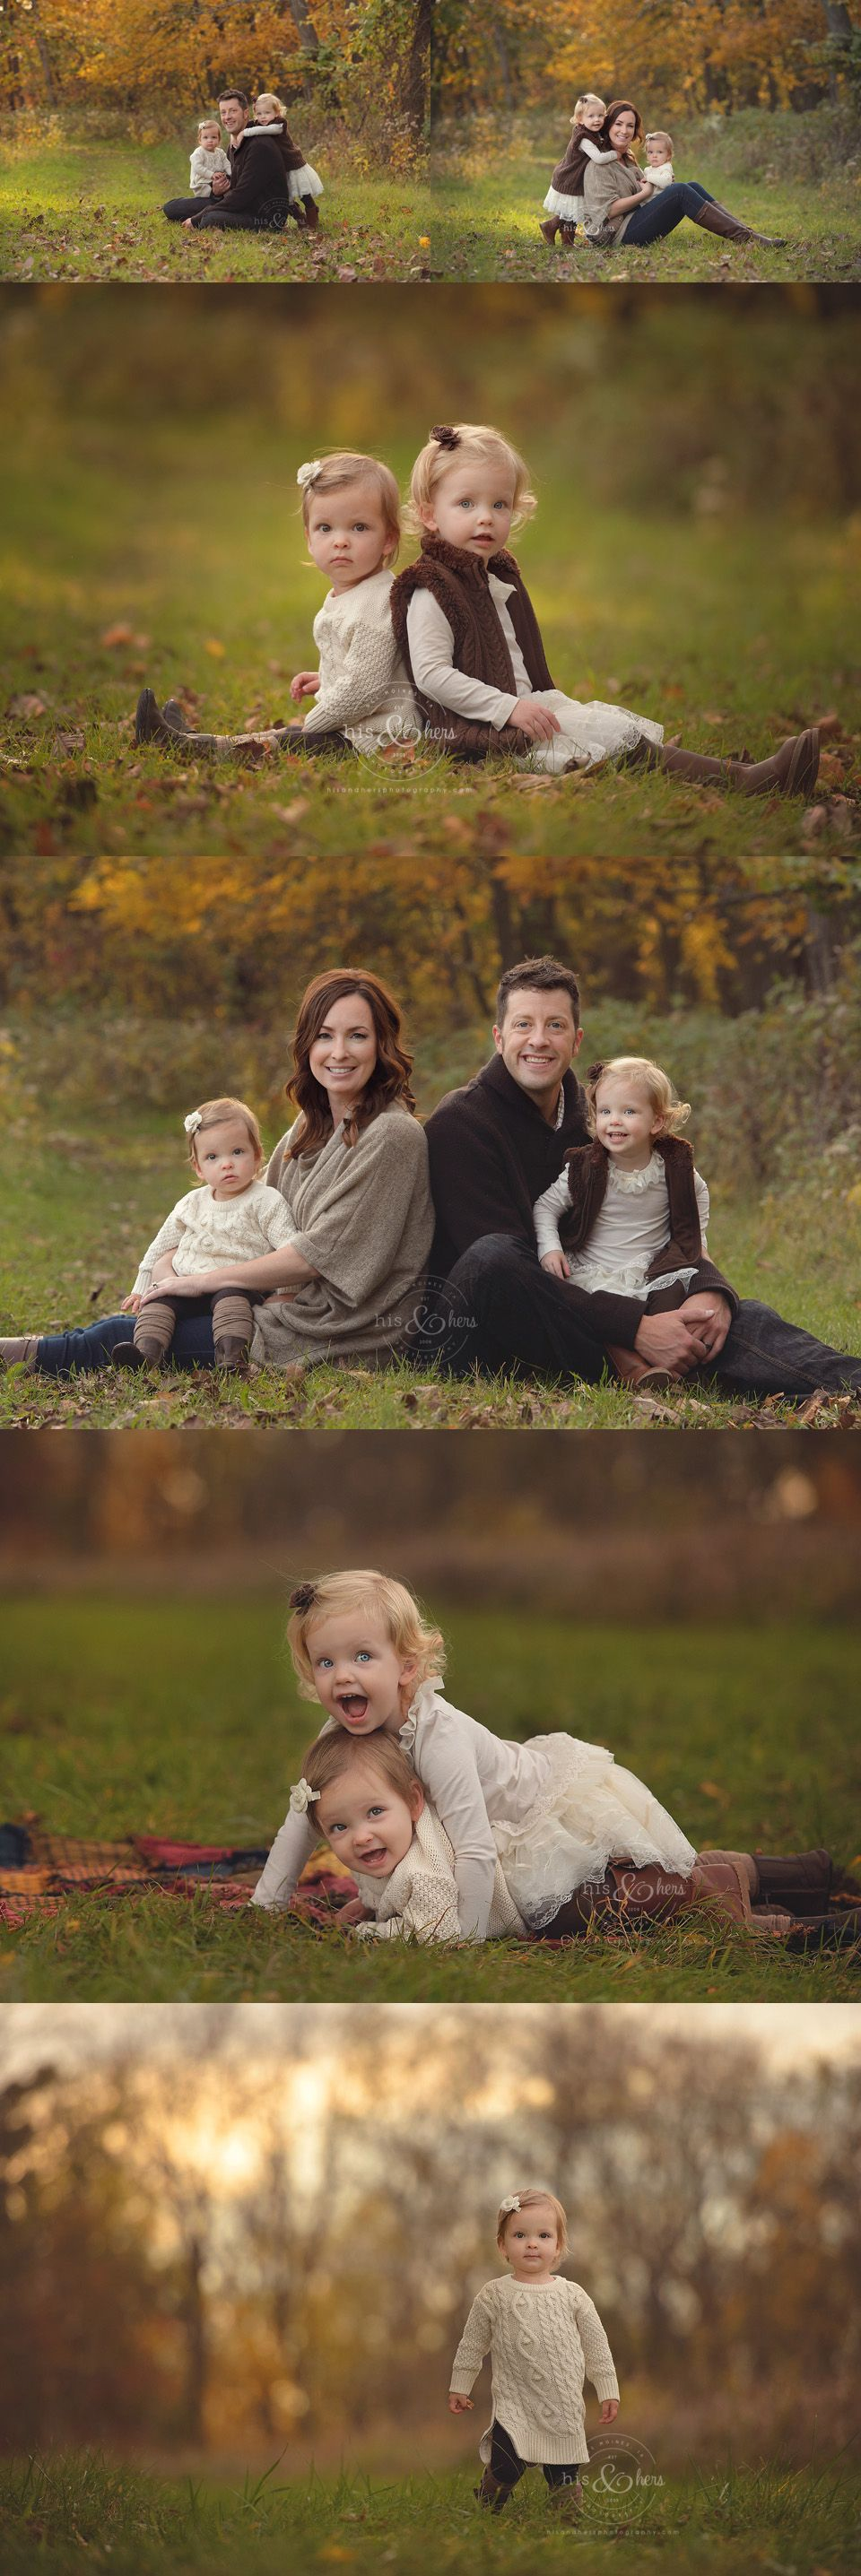 children's photography des moines iowa child pictures 1 year 2 year old family pictures